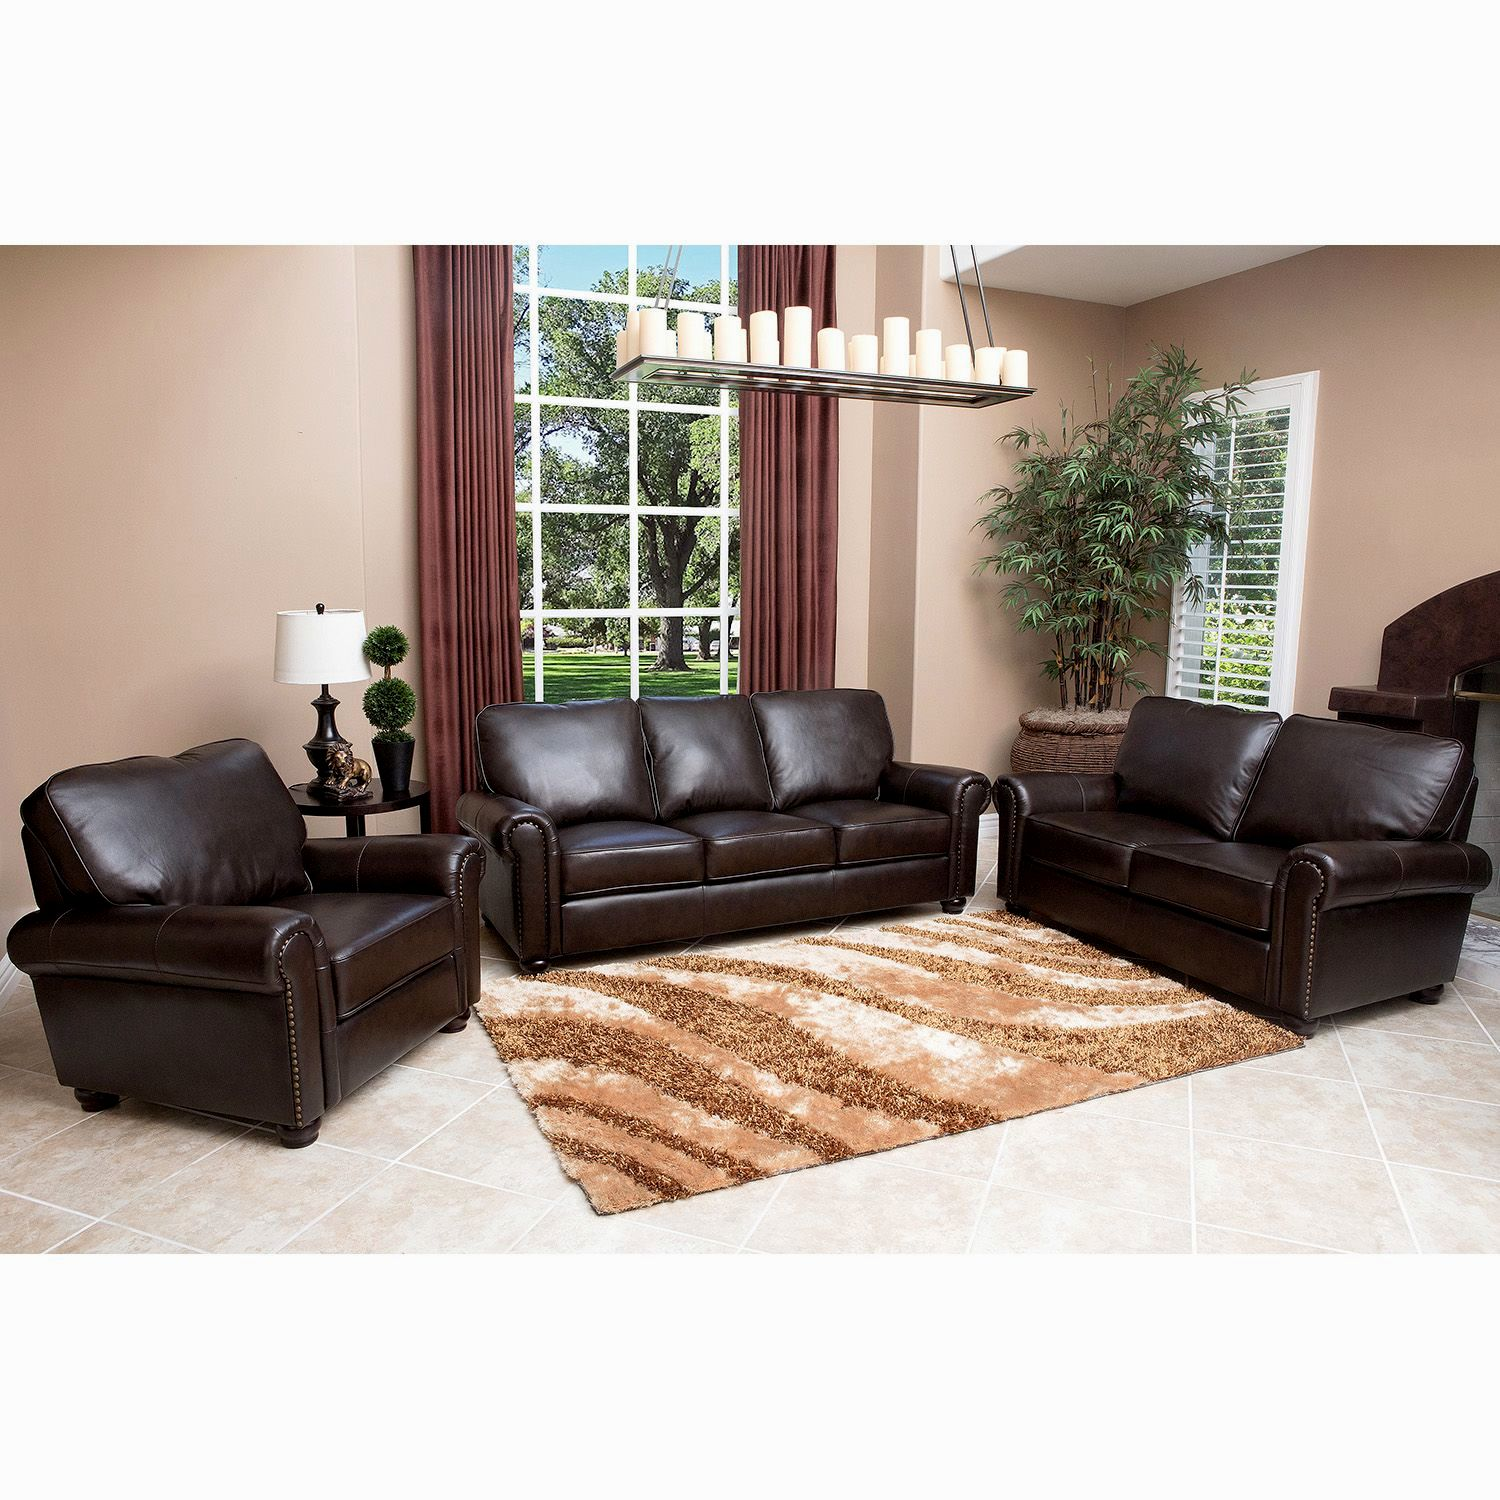 top sams leather sofa gallery-Excellent Sams Leather sofa Inspiration